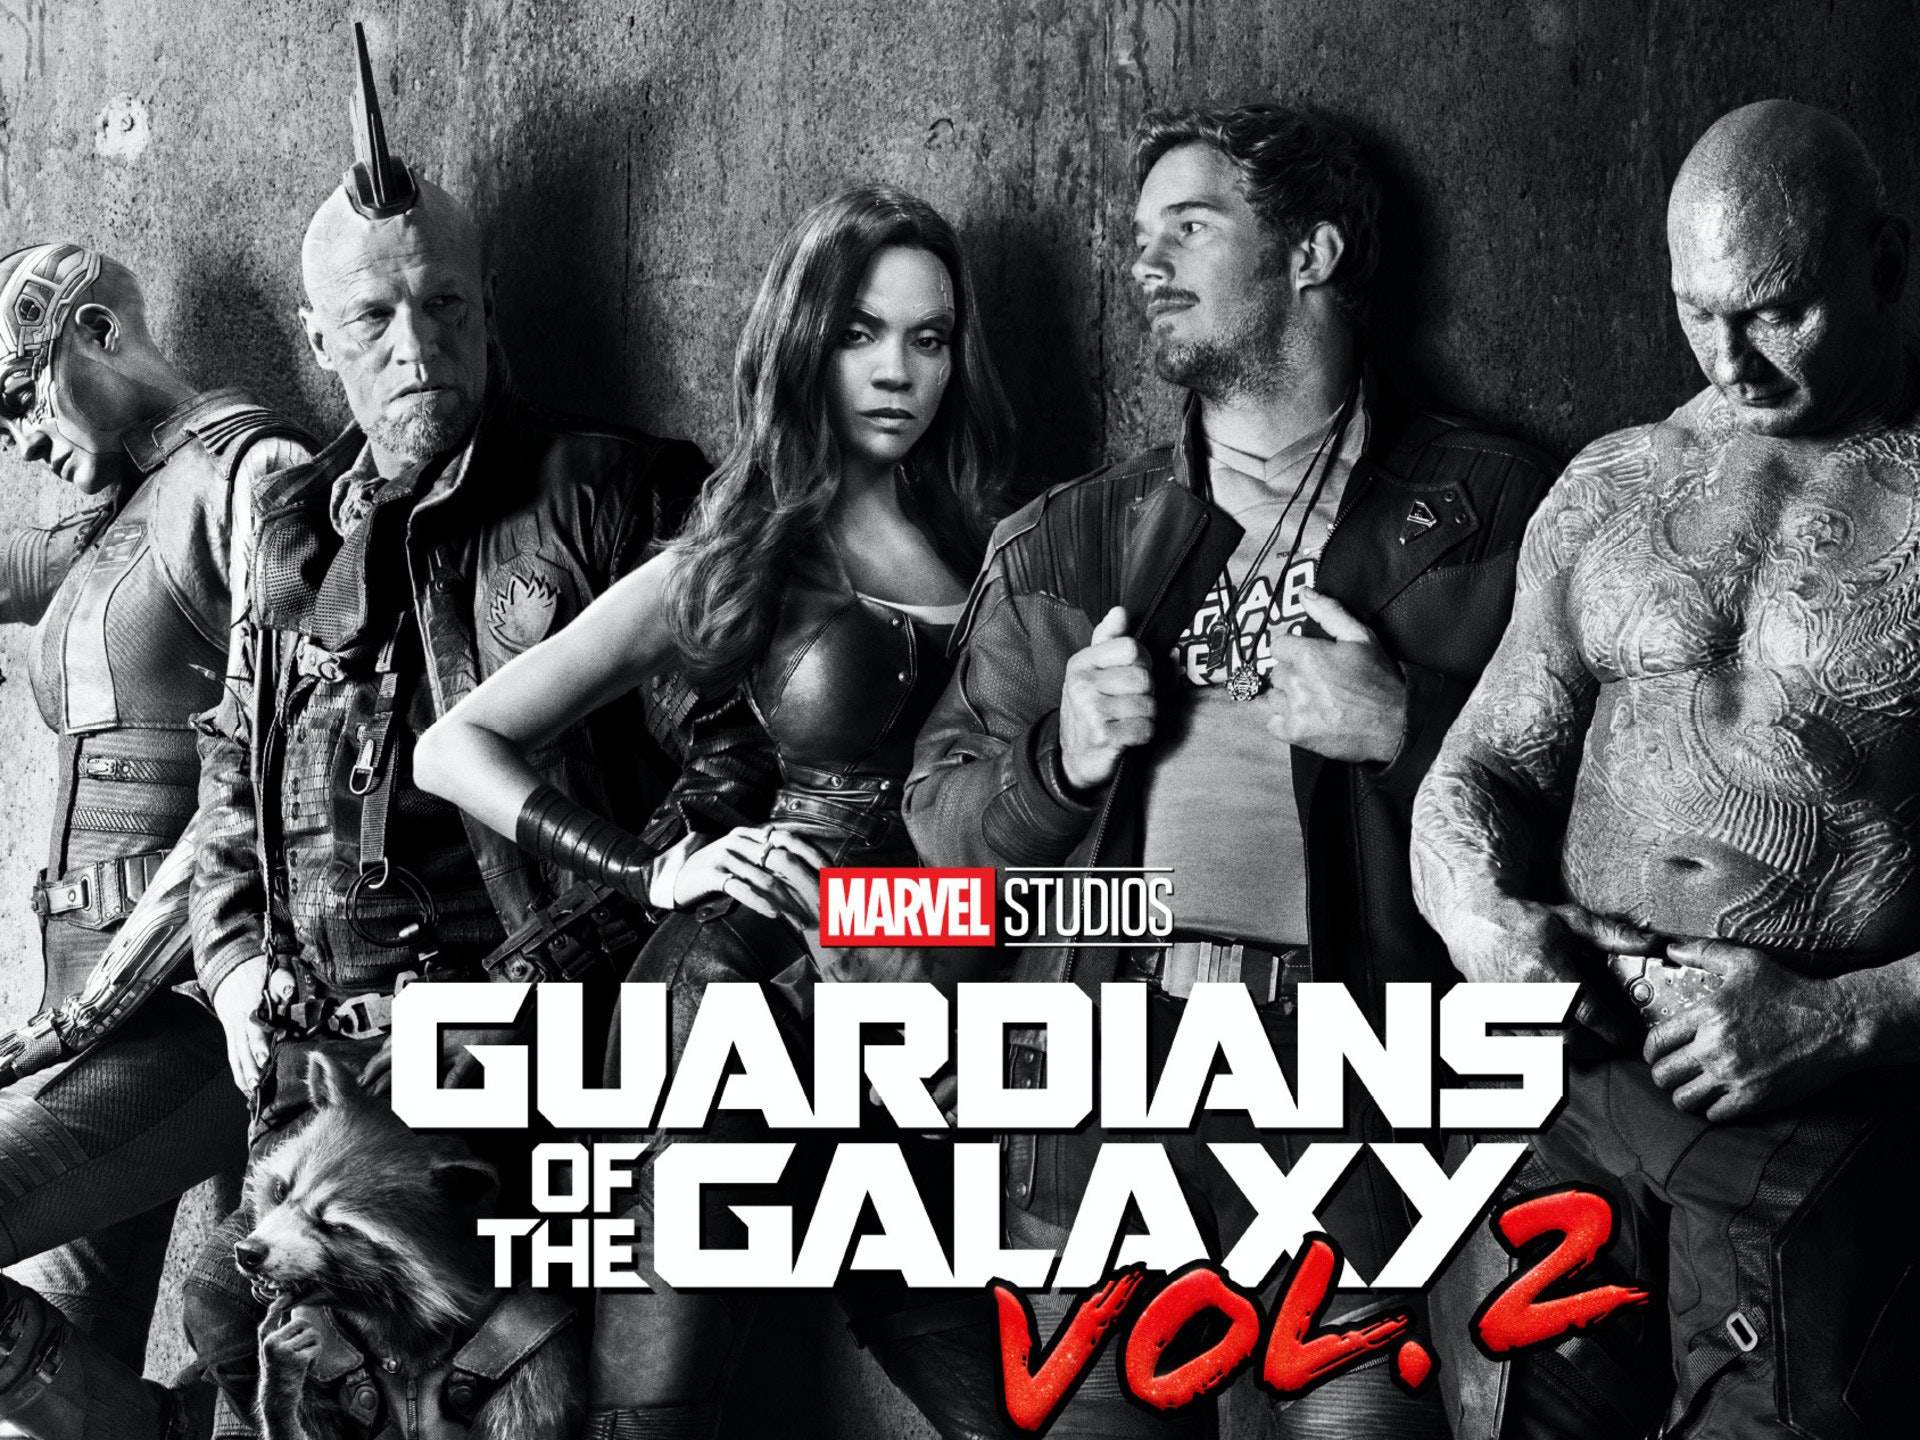 The 'Guardians' 2 Trailer Song Is Already Number One on iTunes